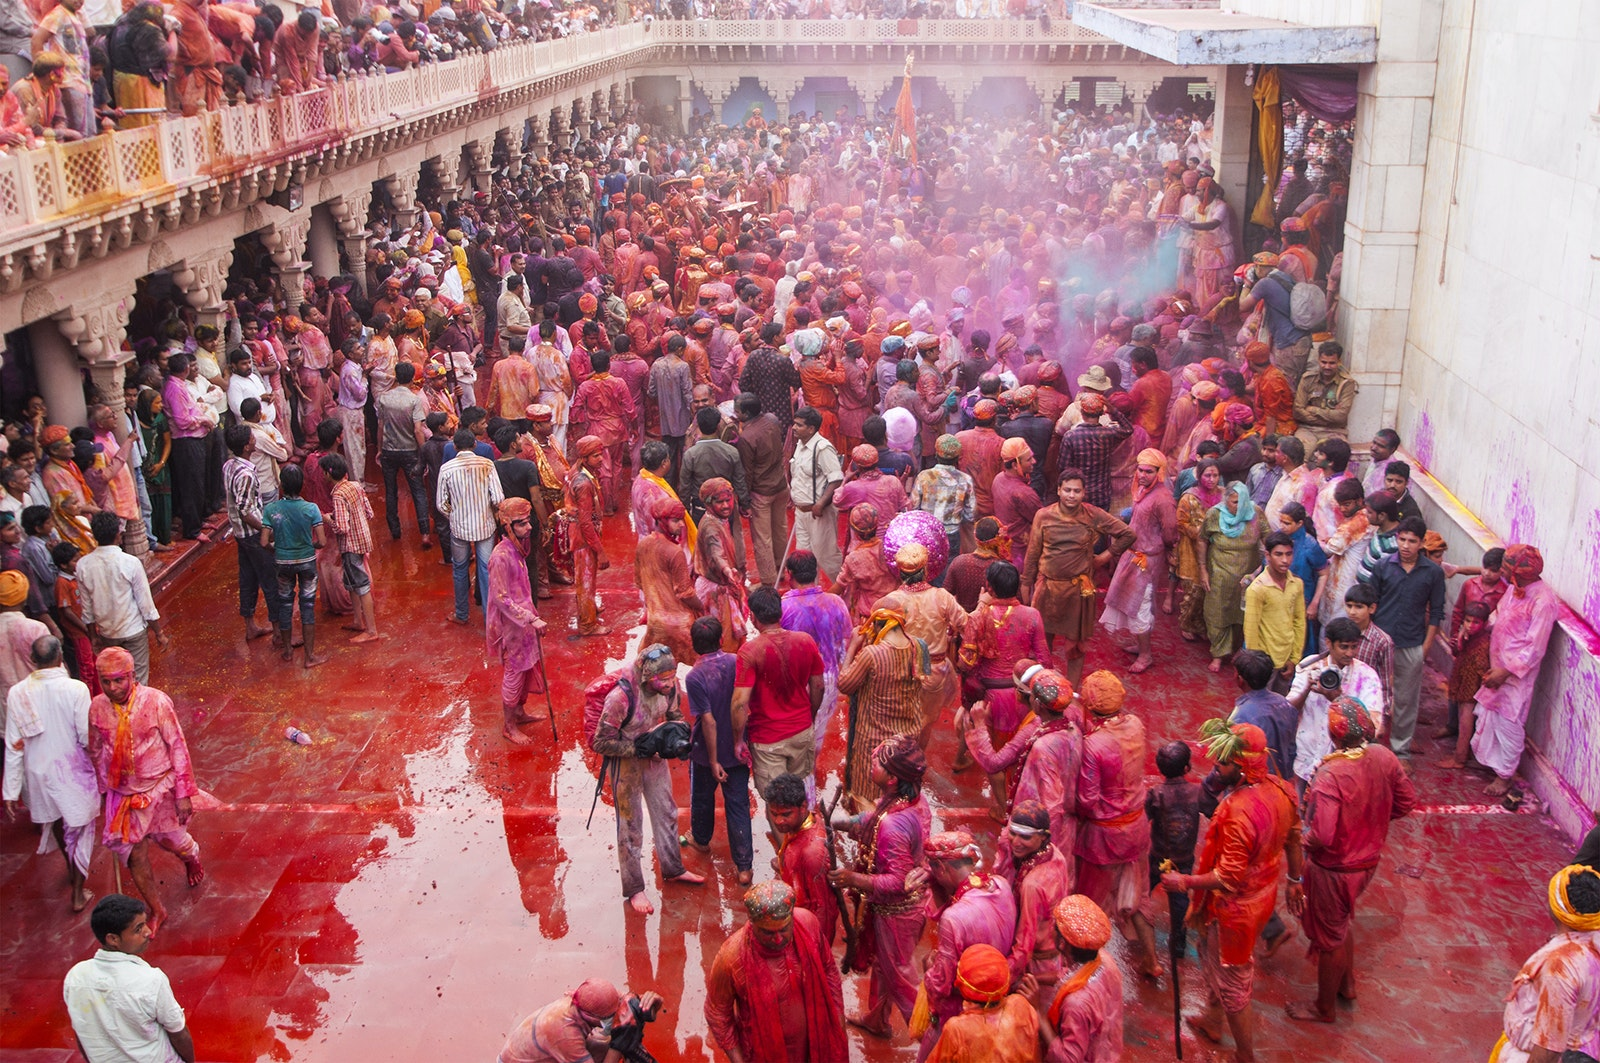 There's no avoiding it: Attend a Holi festival in India, and you'll be covered from head to toe with celebratory colored powders.